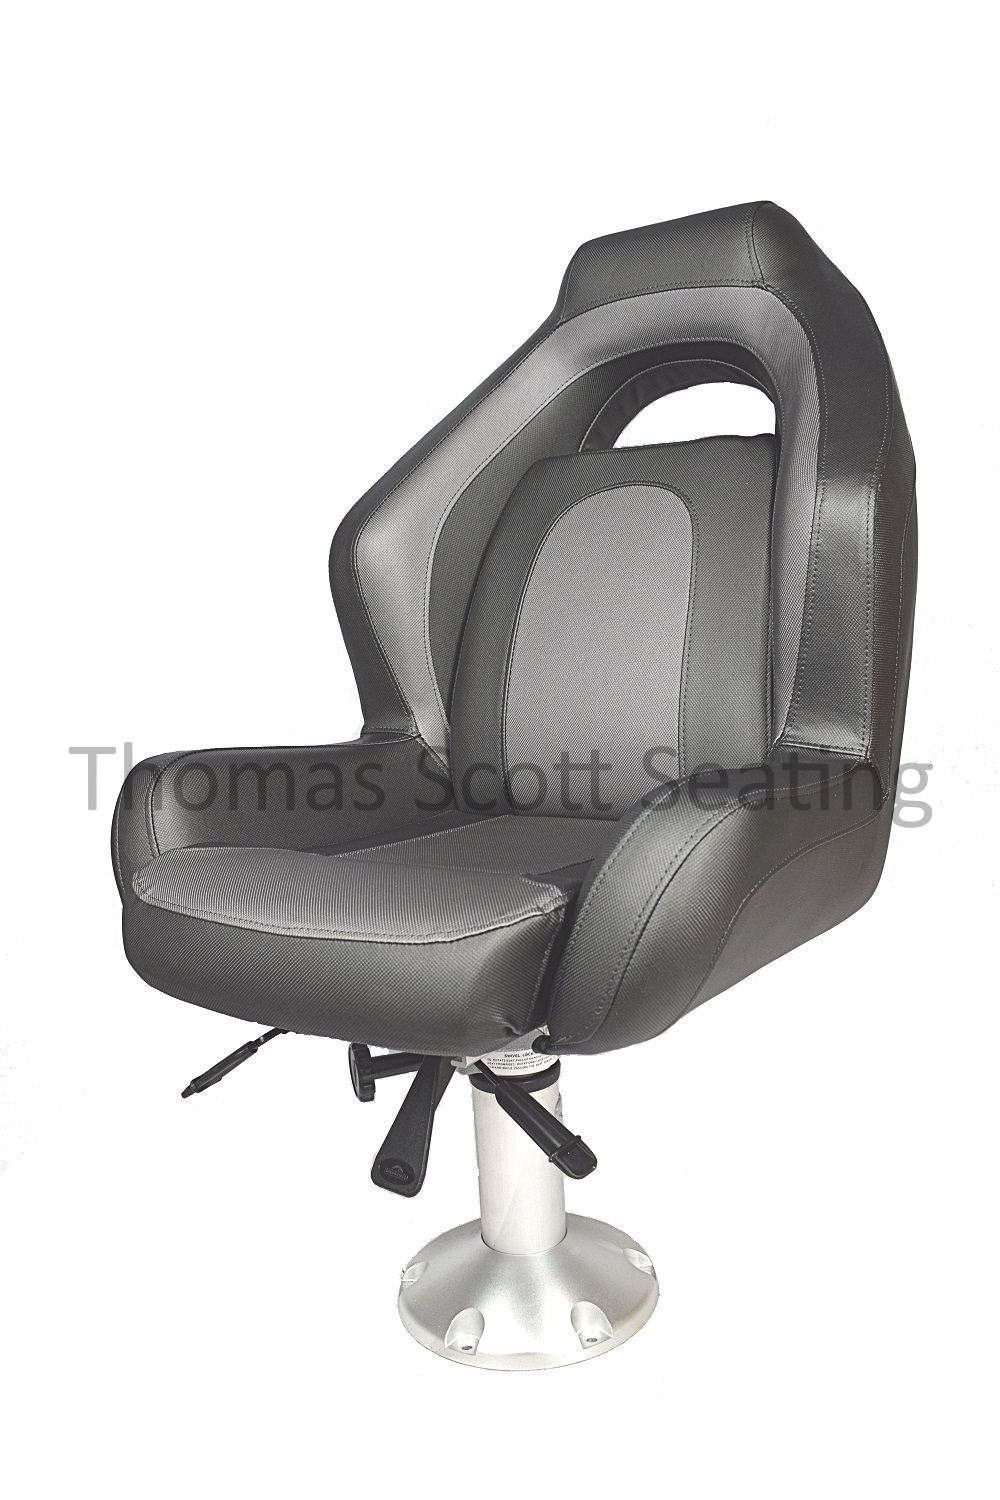 Boat seat Helm Captain Fishing chair Folding Springfield 1041608 GREY